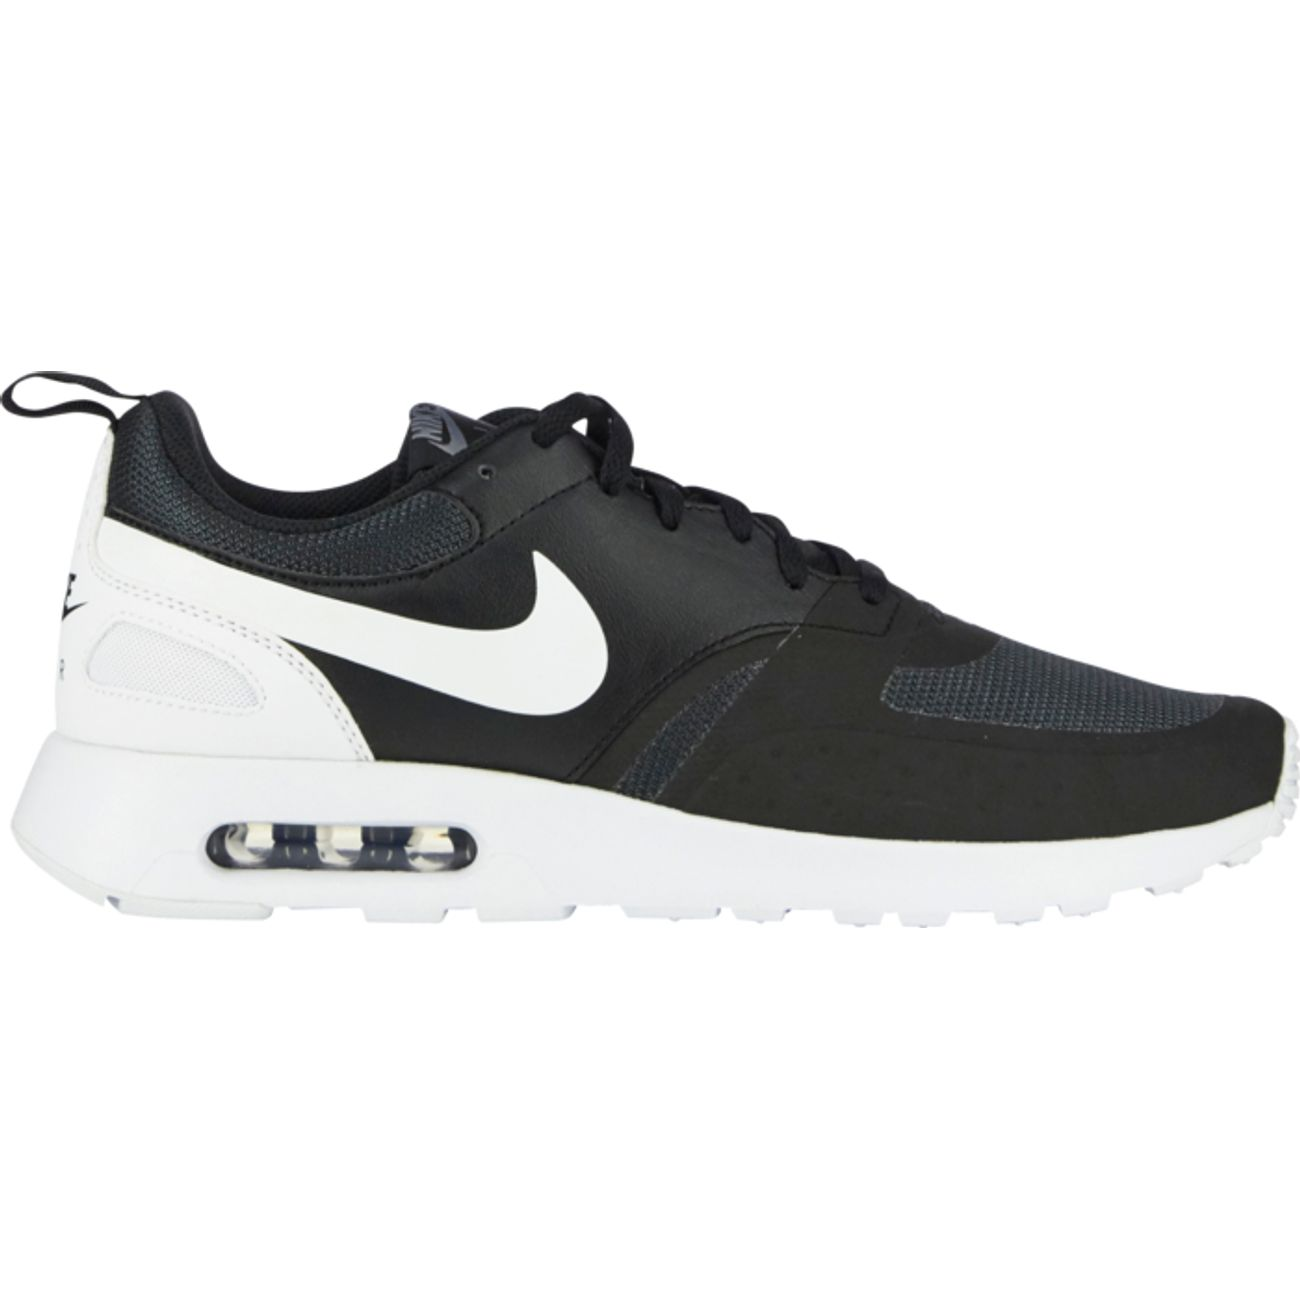 on sale 52e79 600ea CHAUSSURES BASSES homme NIKE AIR MAX VISION SE ...